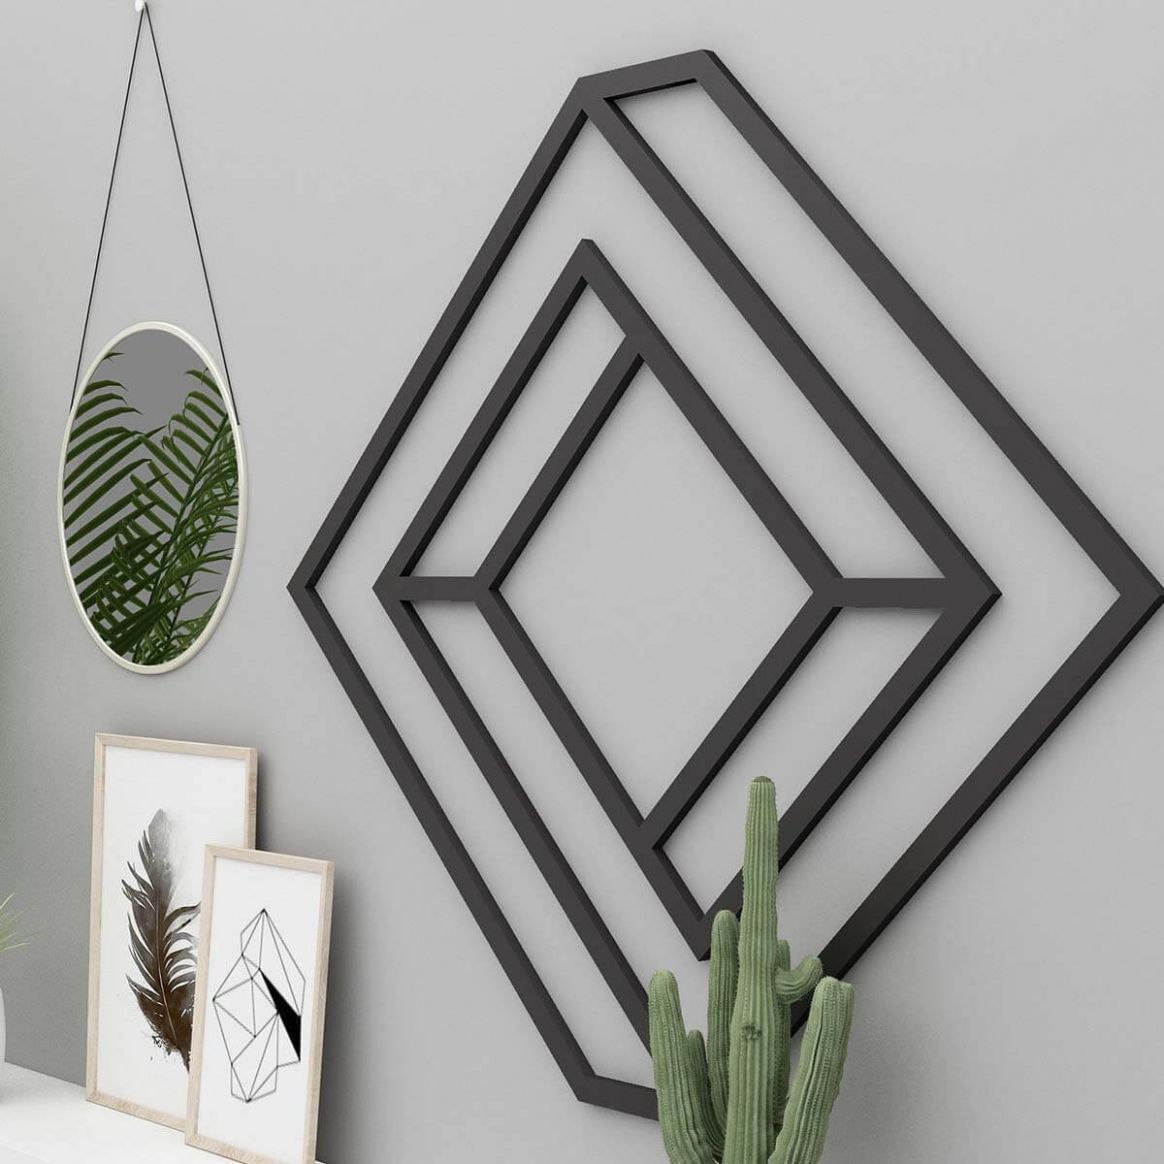 11-D Geometric Metal Home Decor Wall Art — Homebnc